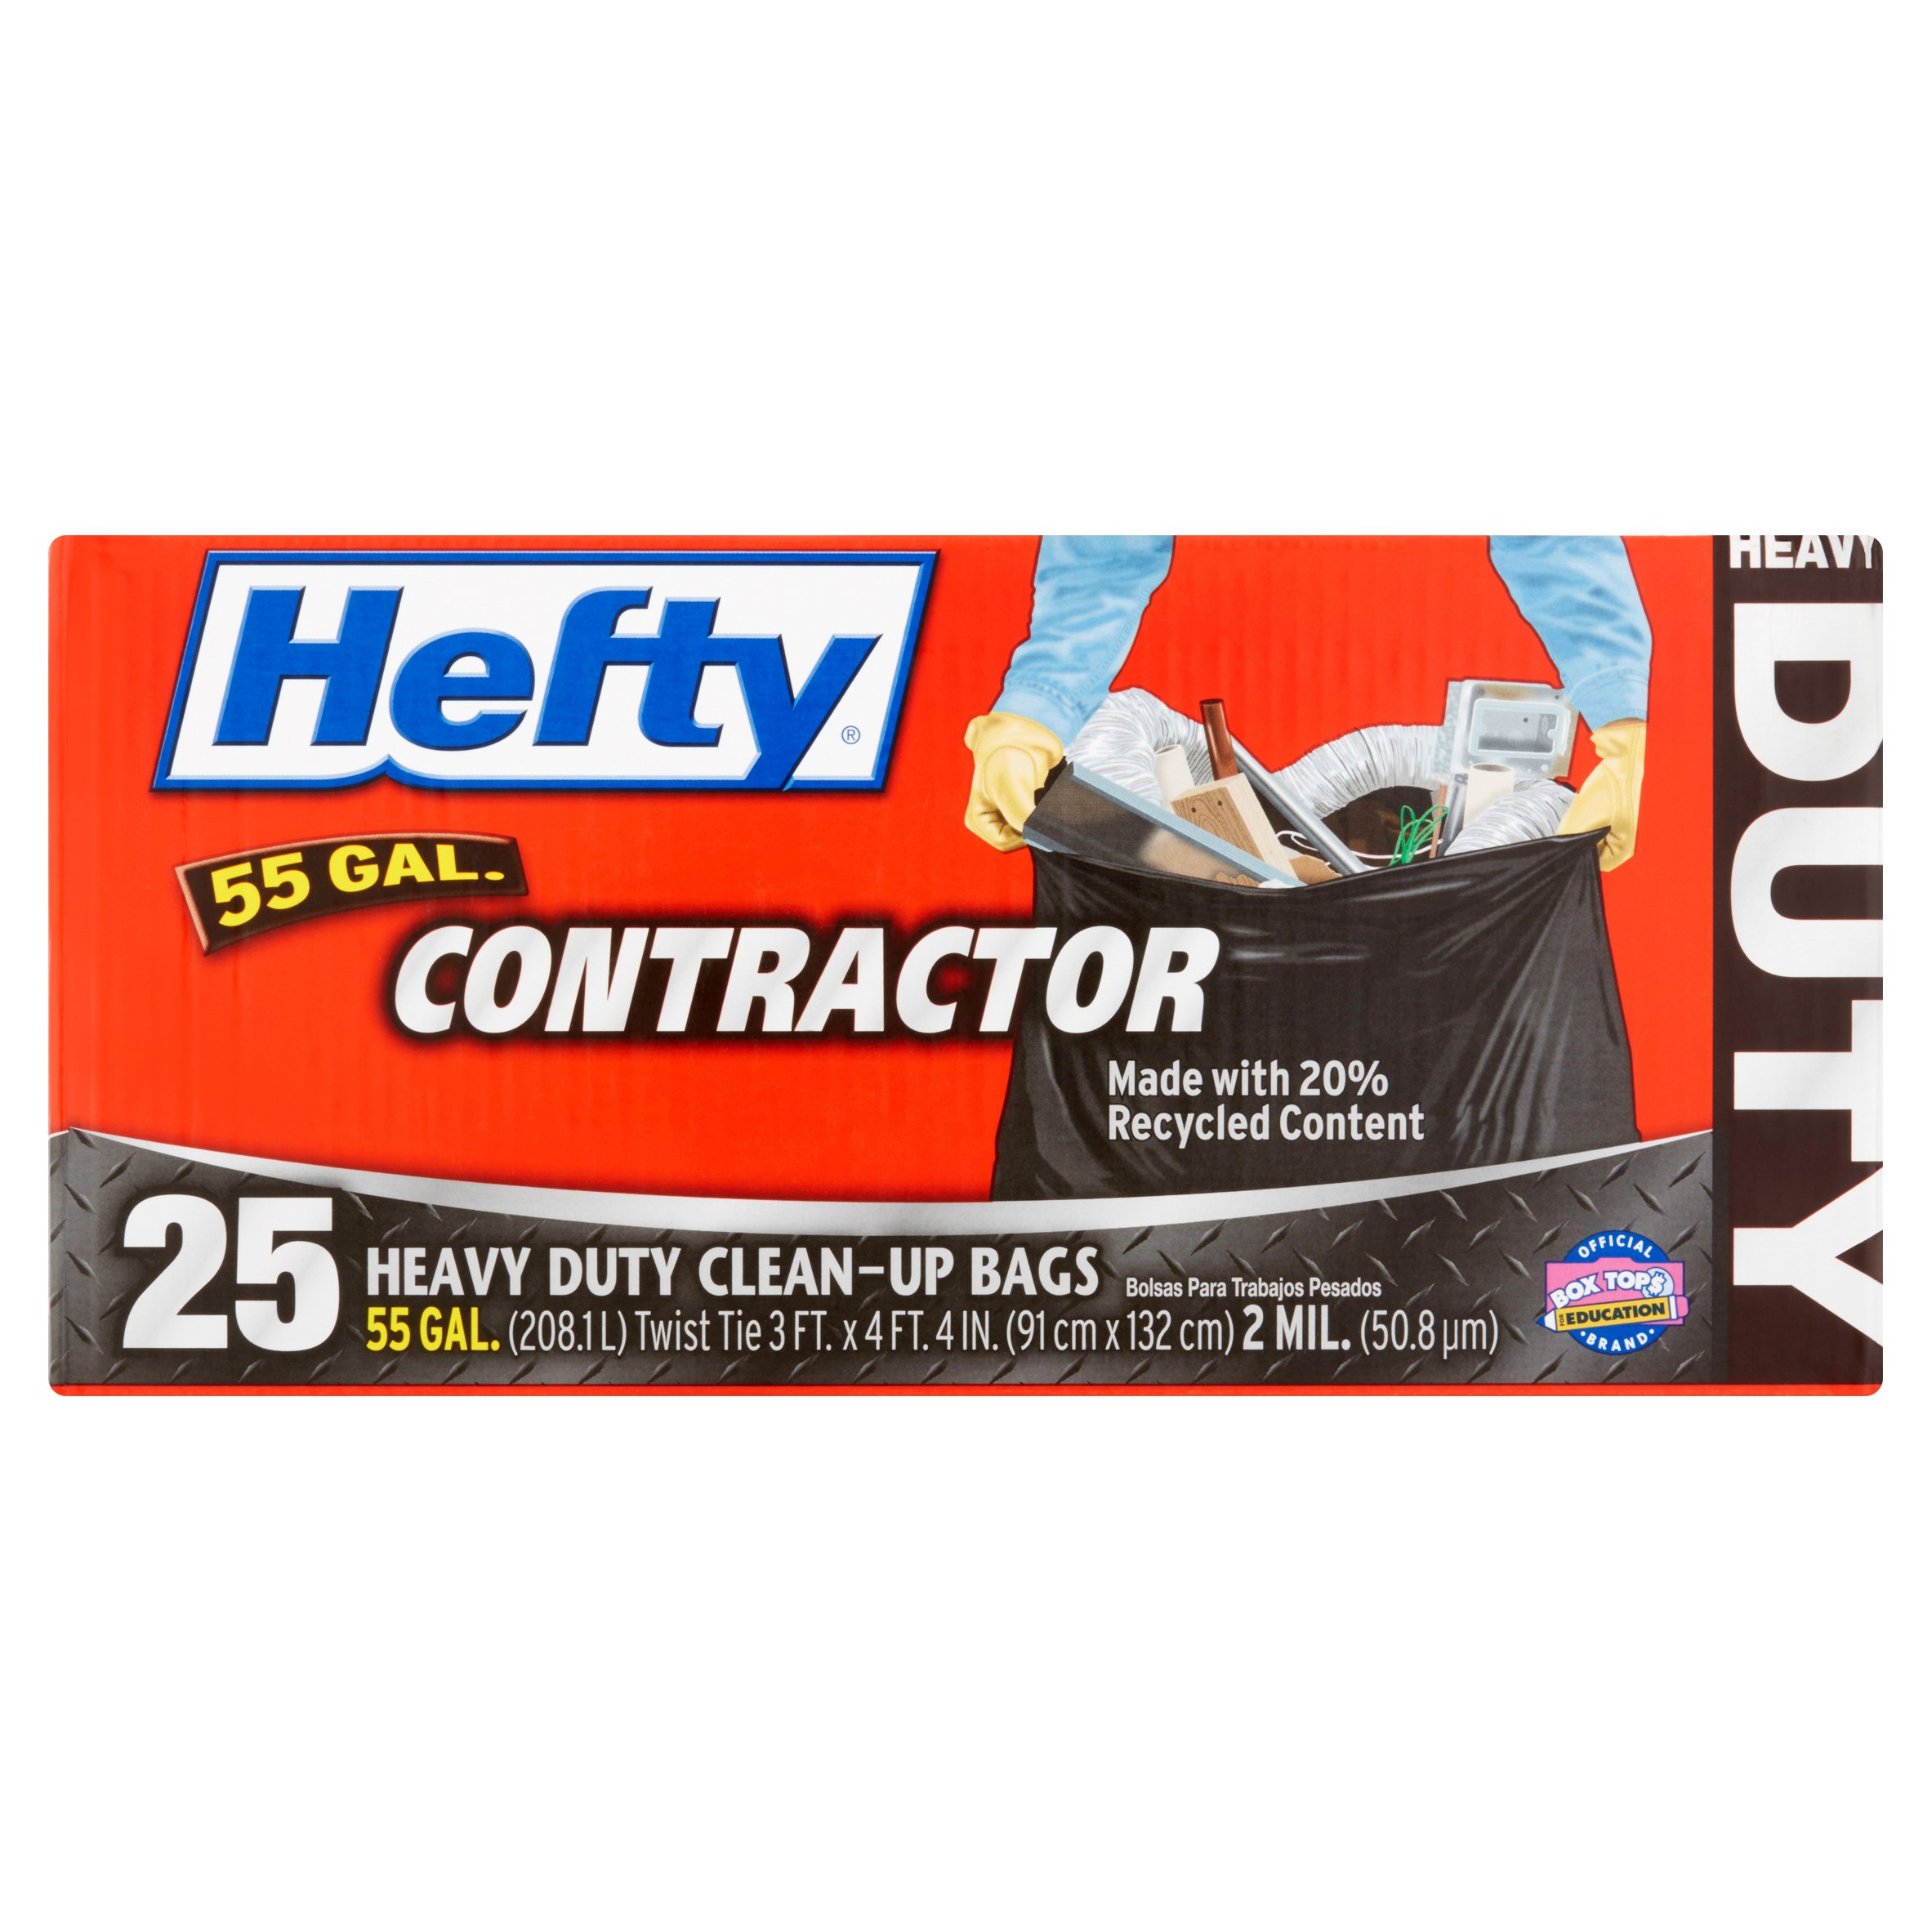 Hefty Contractor Heavy Duty Clean Up Bags Twist Tie 45 Gallon 22 Count by